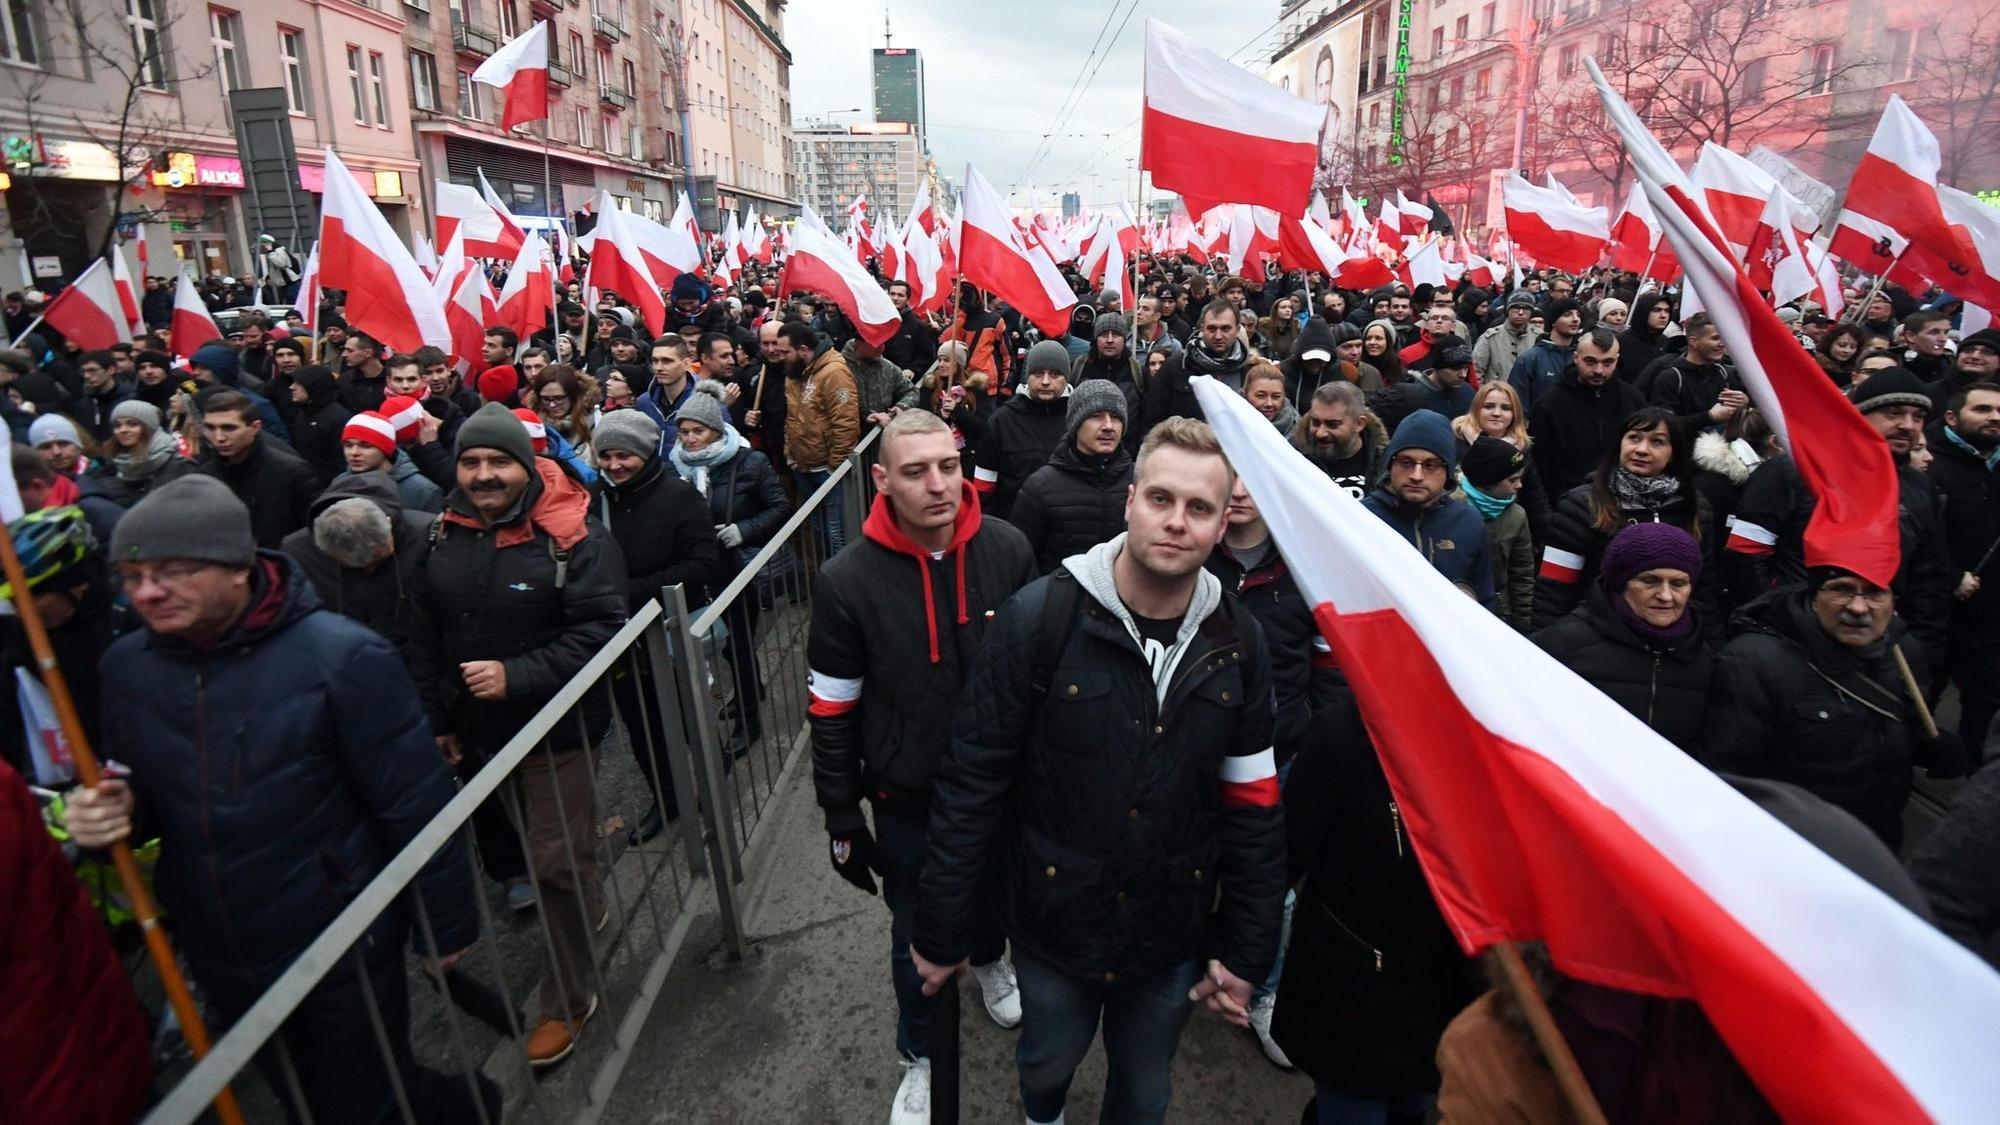 What Does The Left Actually Hate? la fg poland march 20171113 1 nationalism  us canada staff picks society culture politics government other nature history featured europe